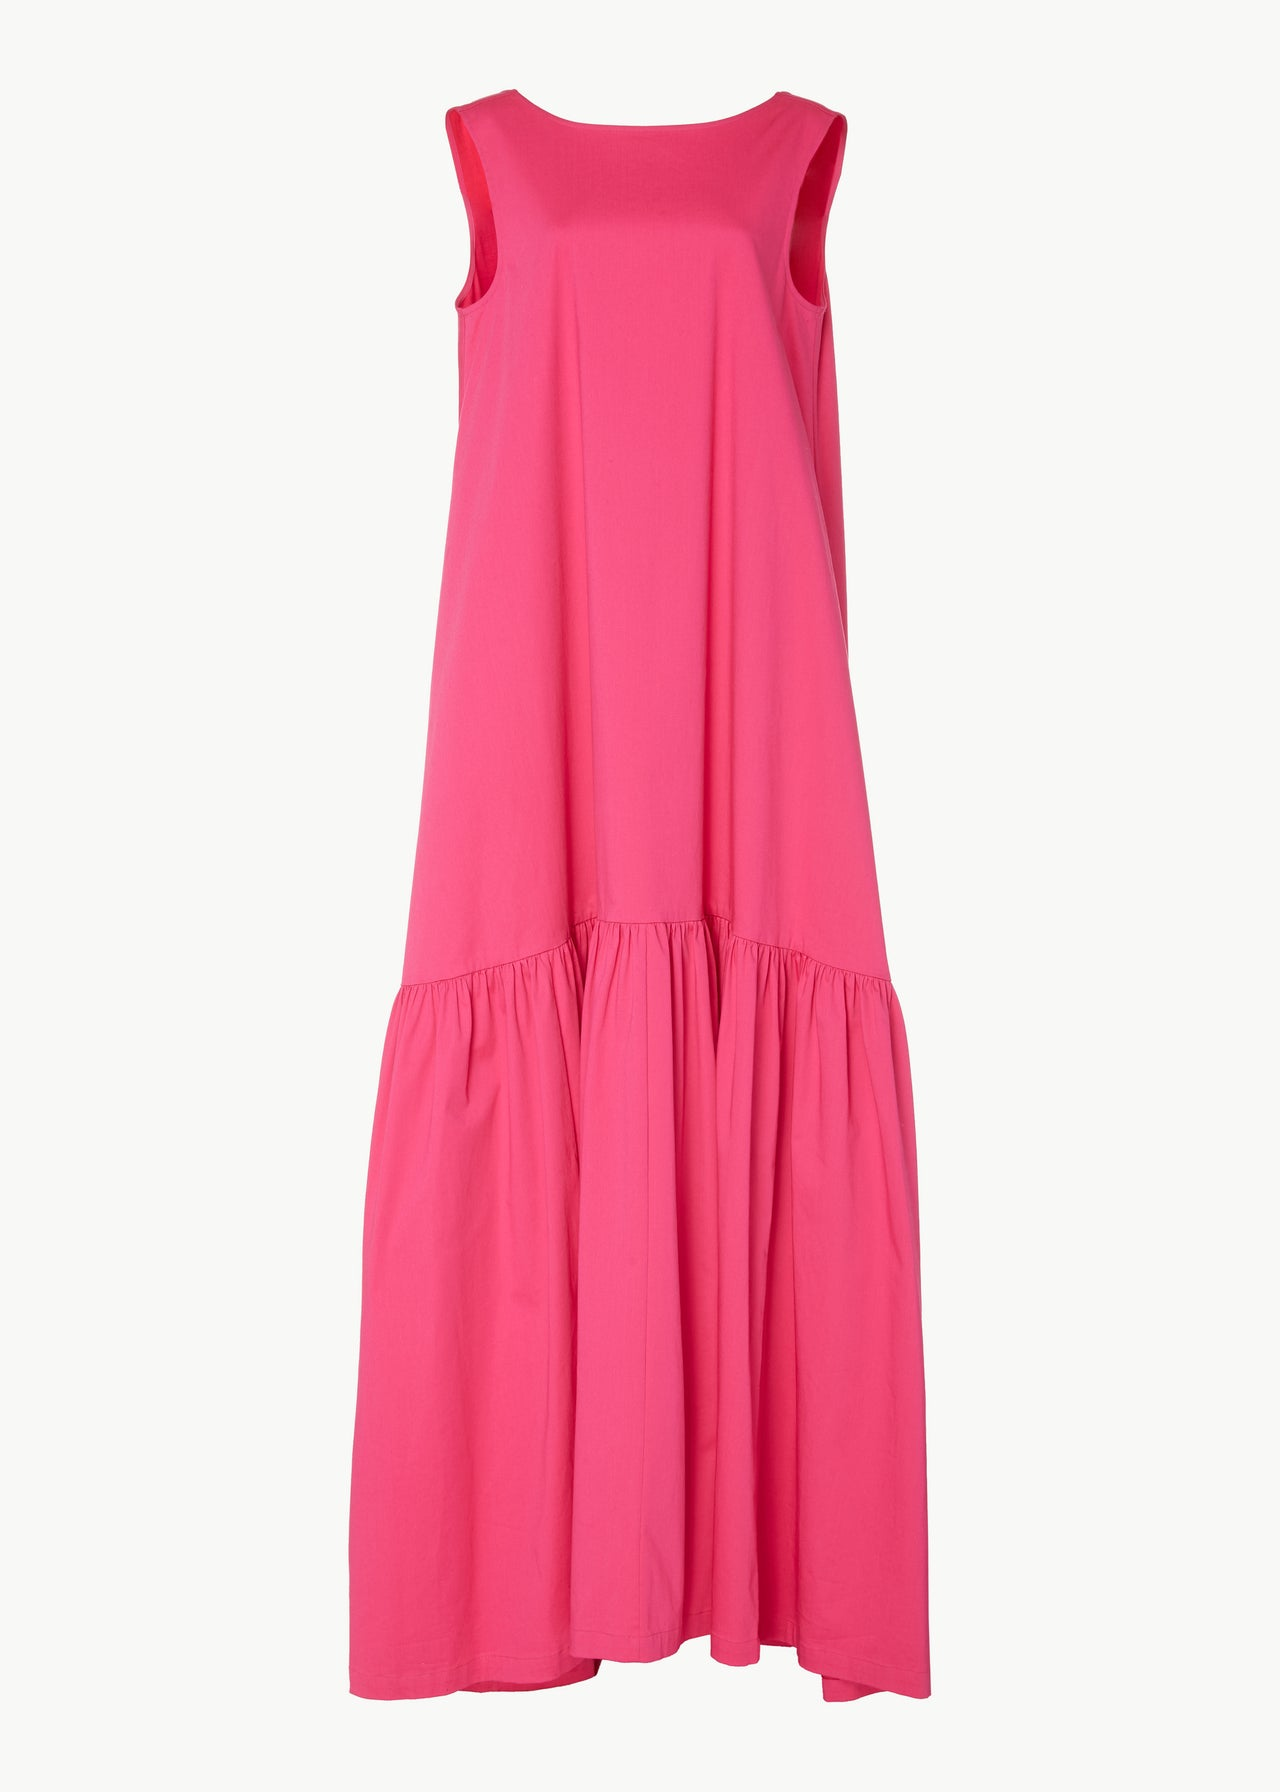 Low Back Gown in Stretch Sateen Cotton - Pink